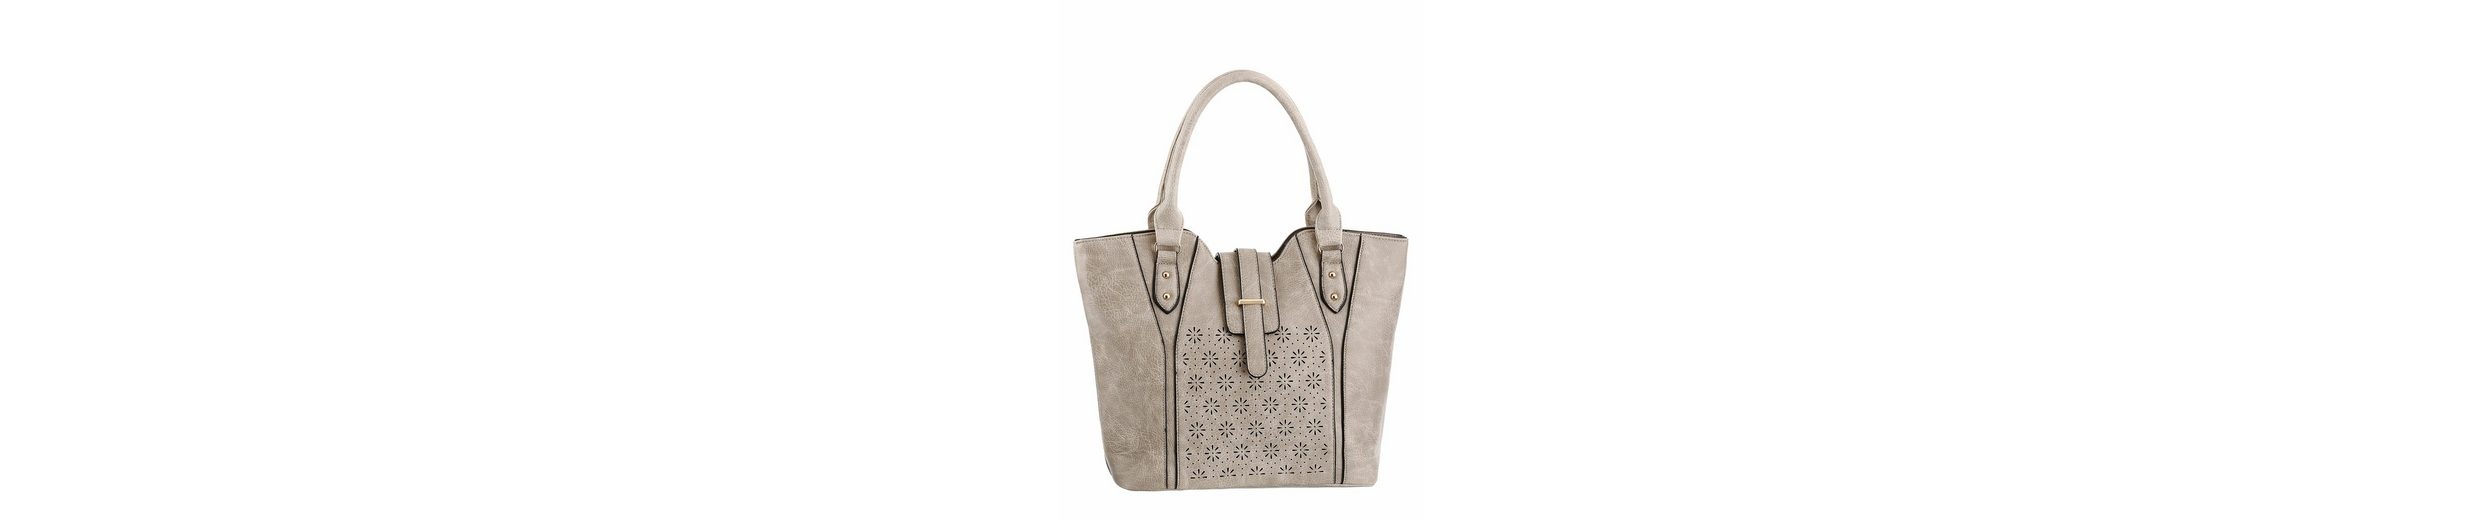 J.Jayz Shopper, mit Perforation